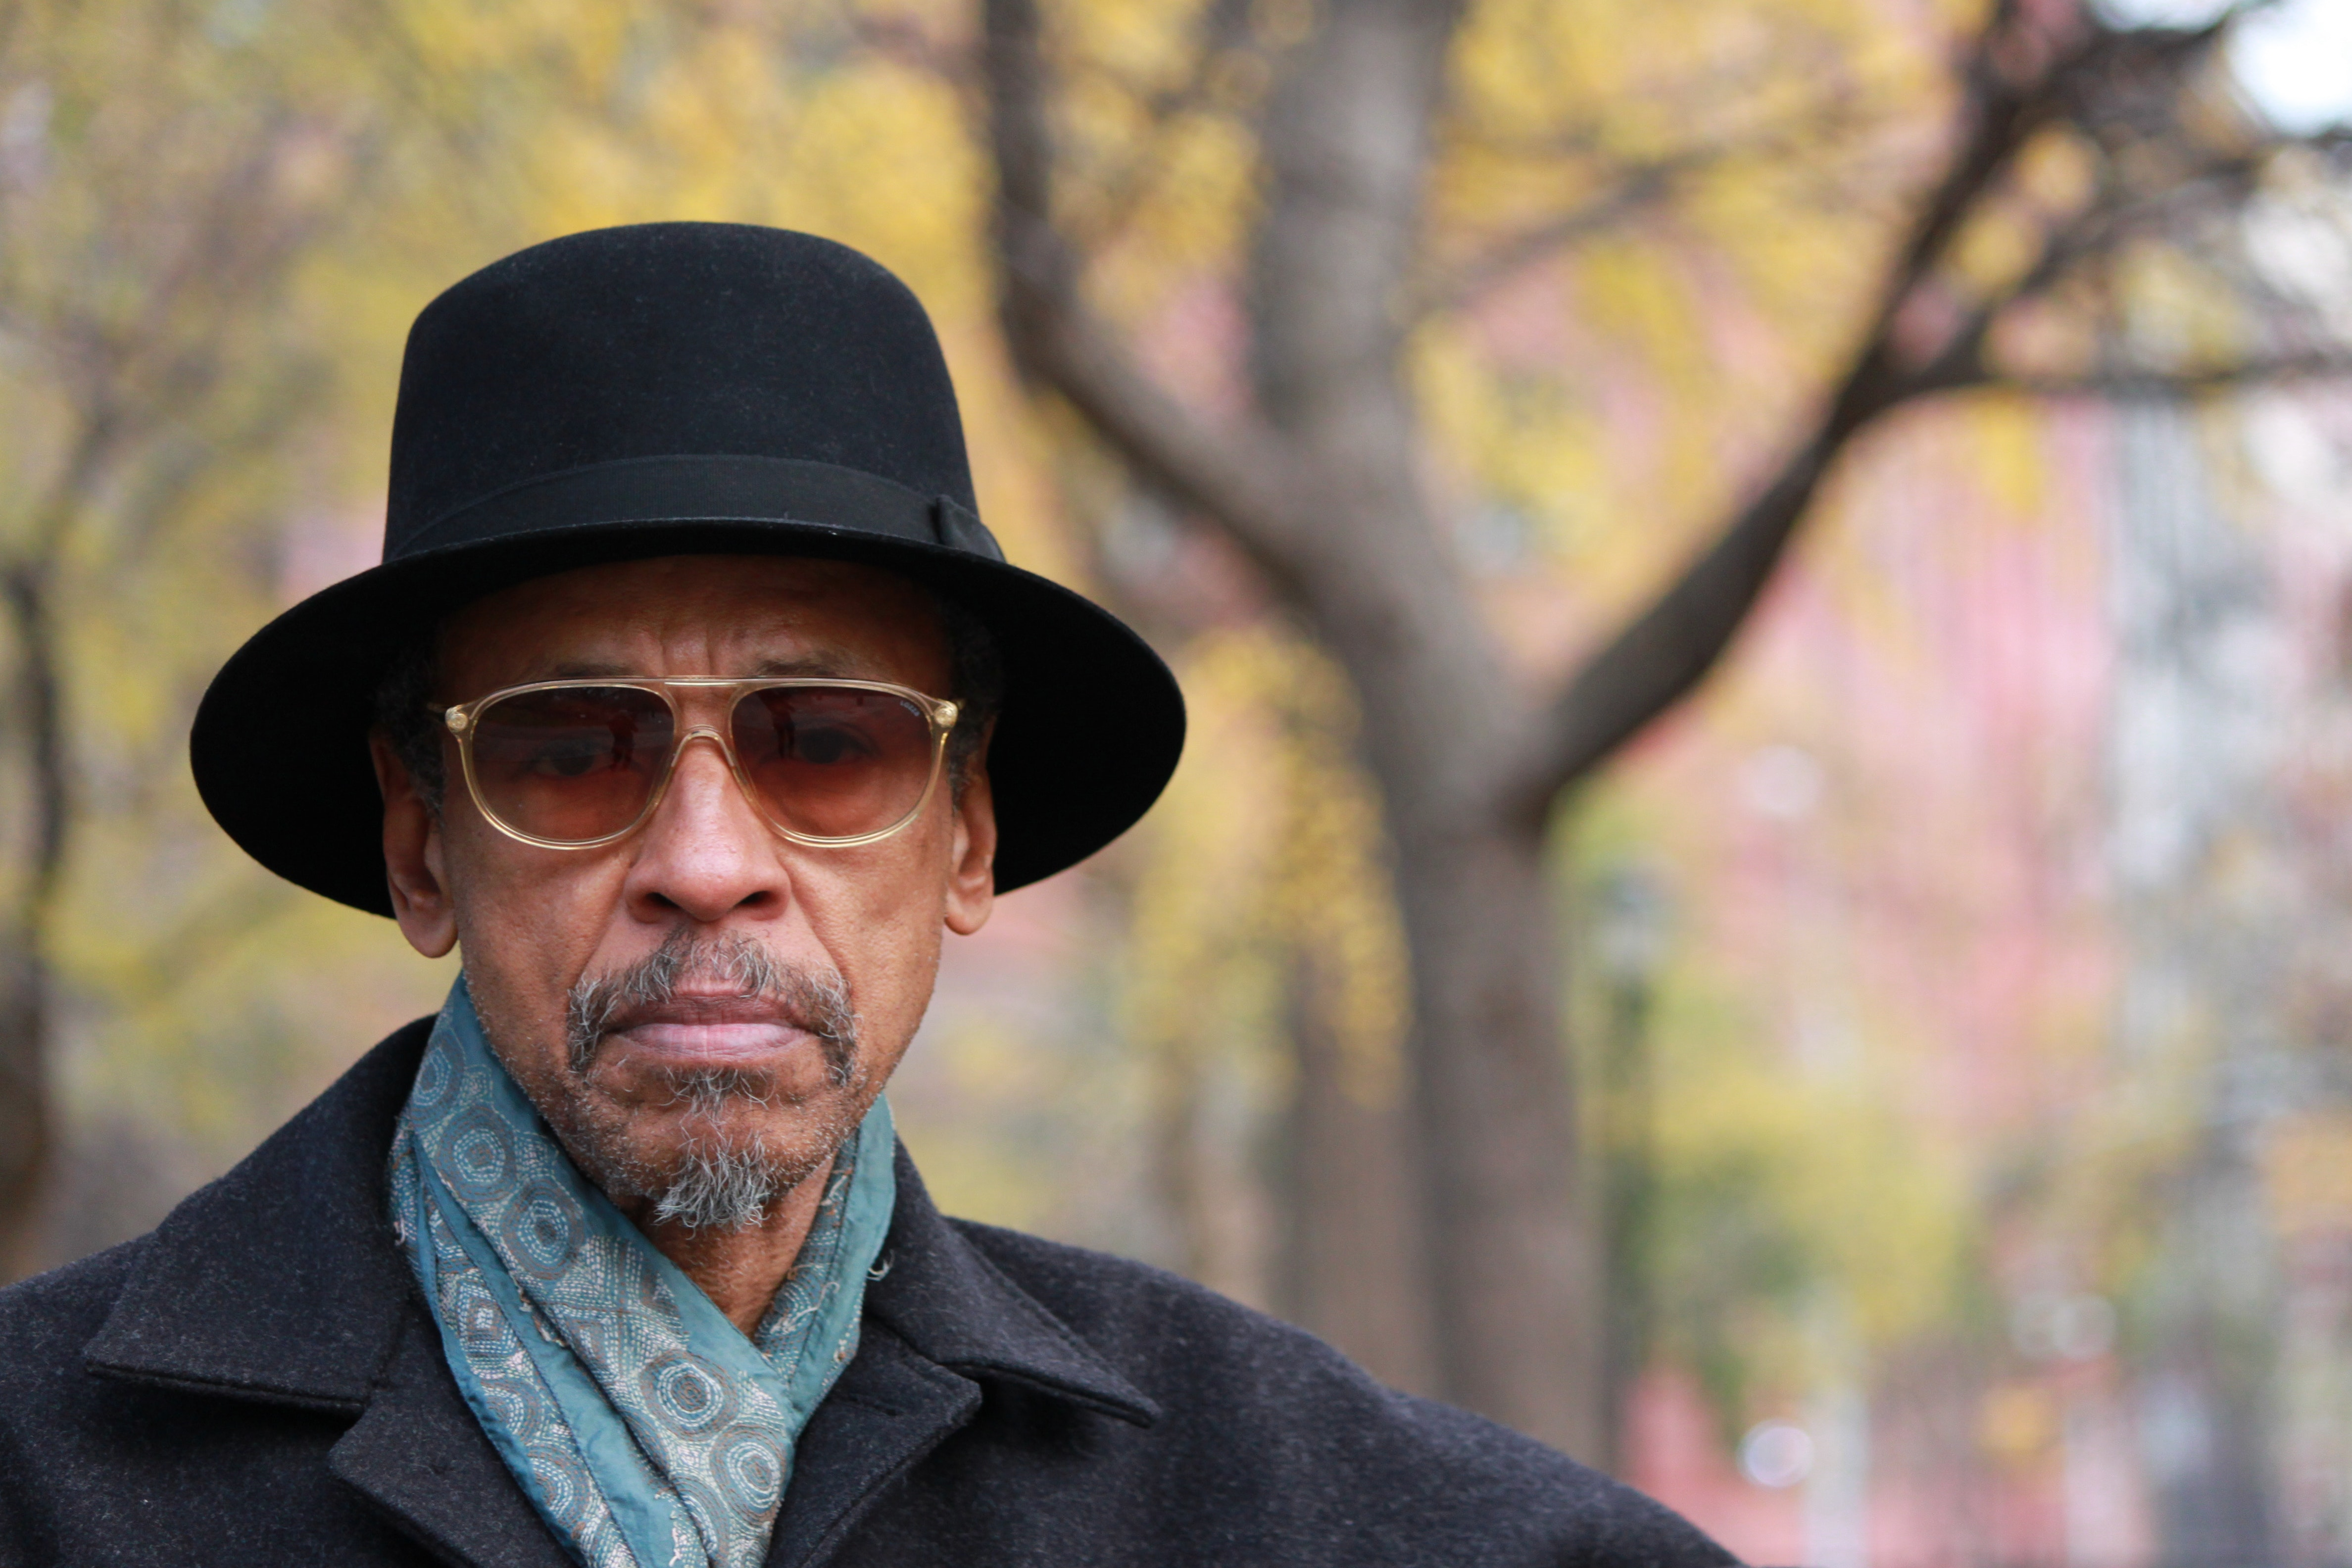 Henry Threadgill stares at the camera.